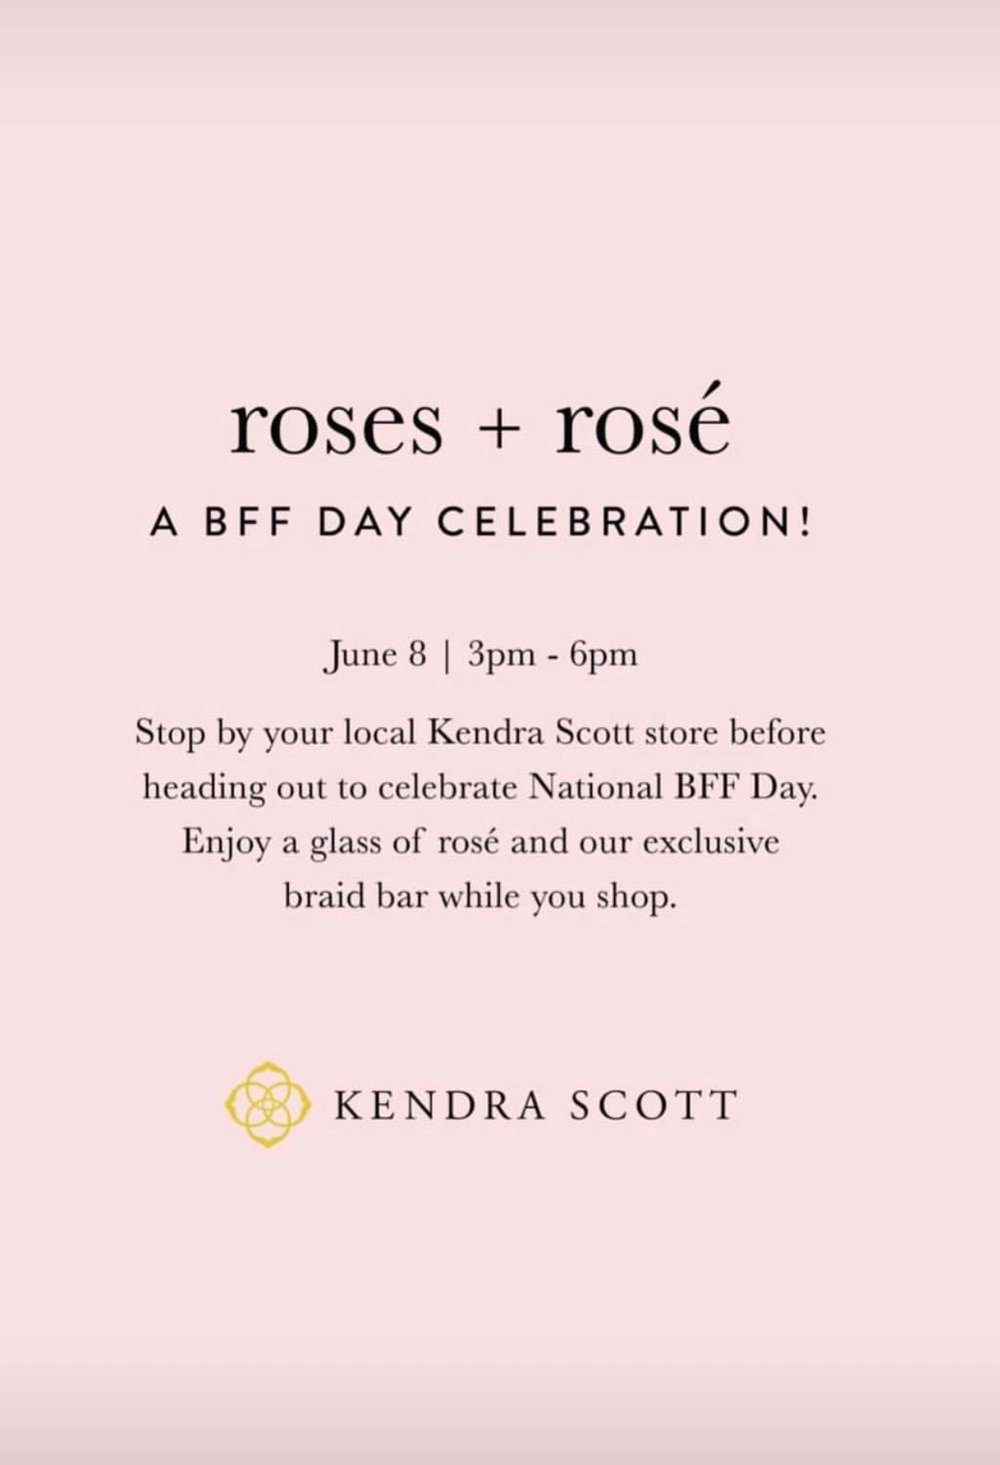 National Best Friends Day at Kendra Scott event in Kansas City